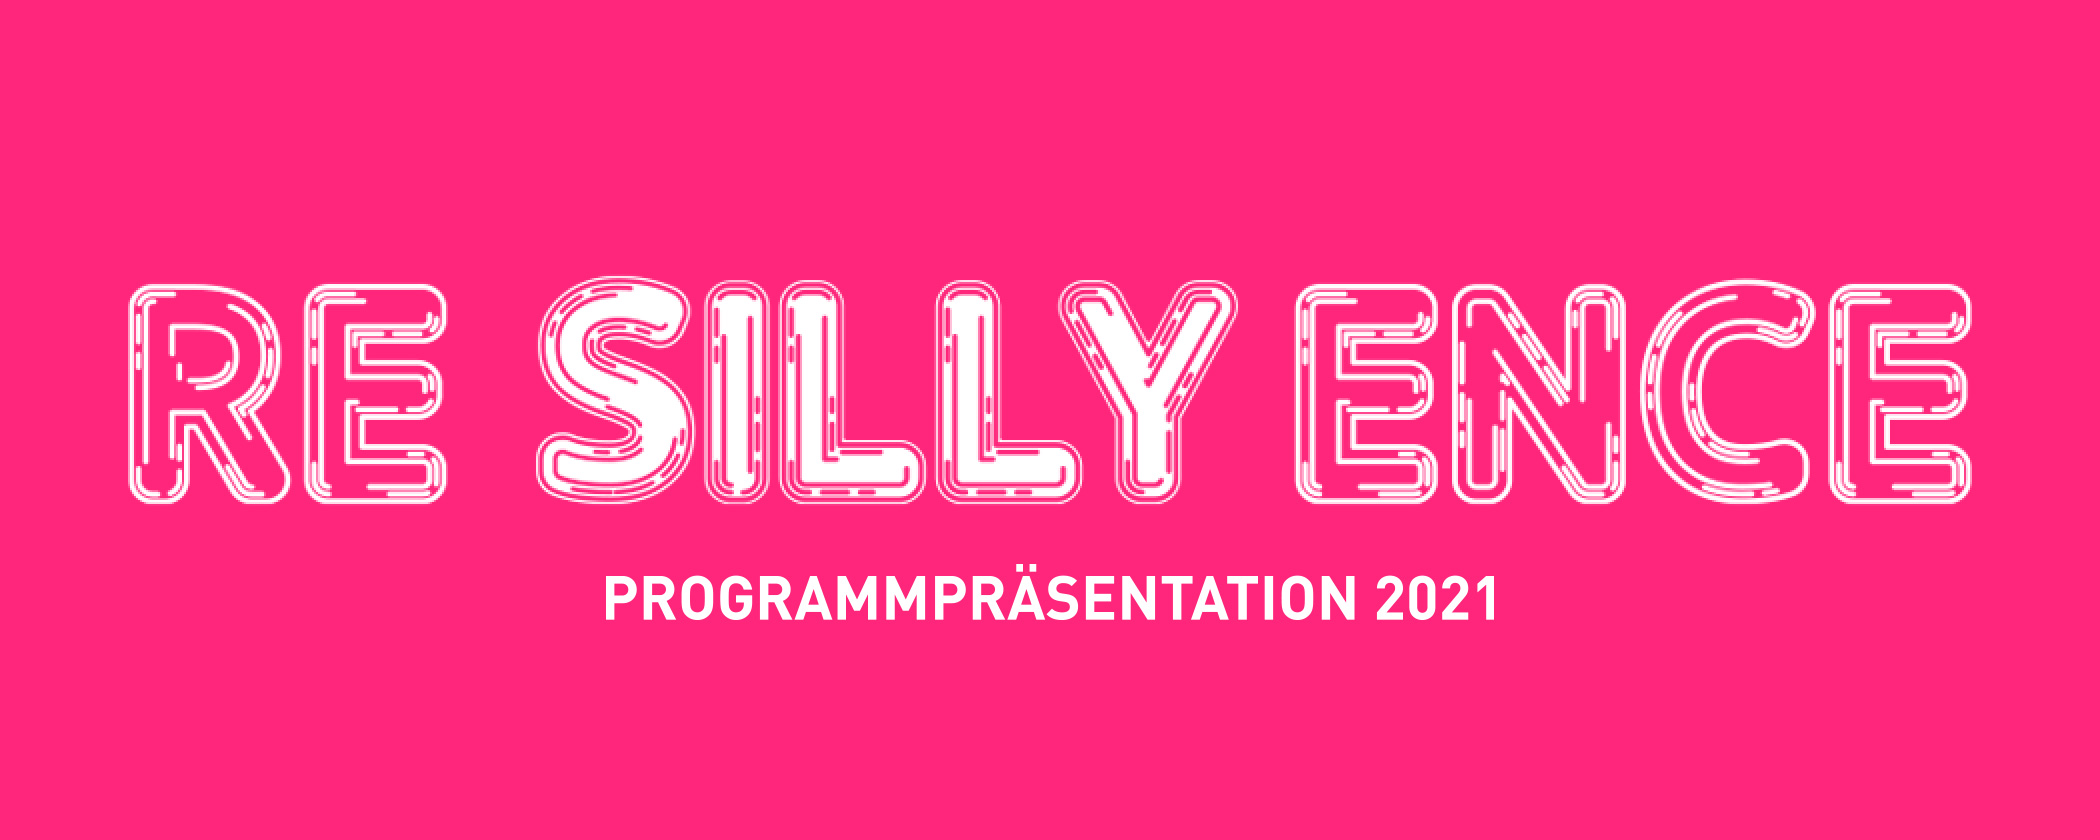 re_silly_ence © Andrea Lehsiak © re_silly_ence, graphic design: Andrea Lehsiak